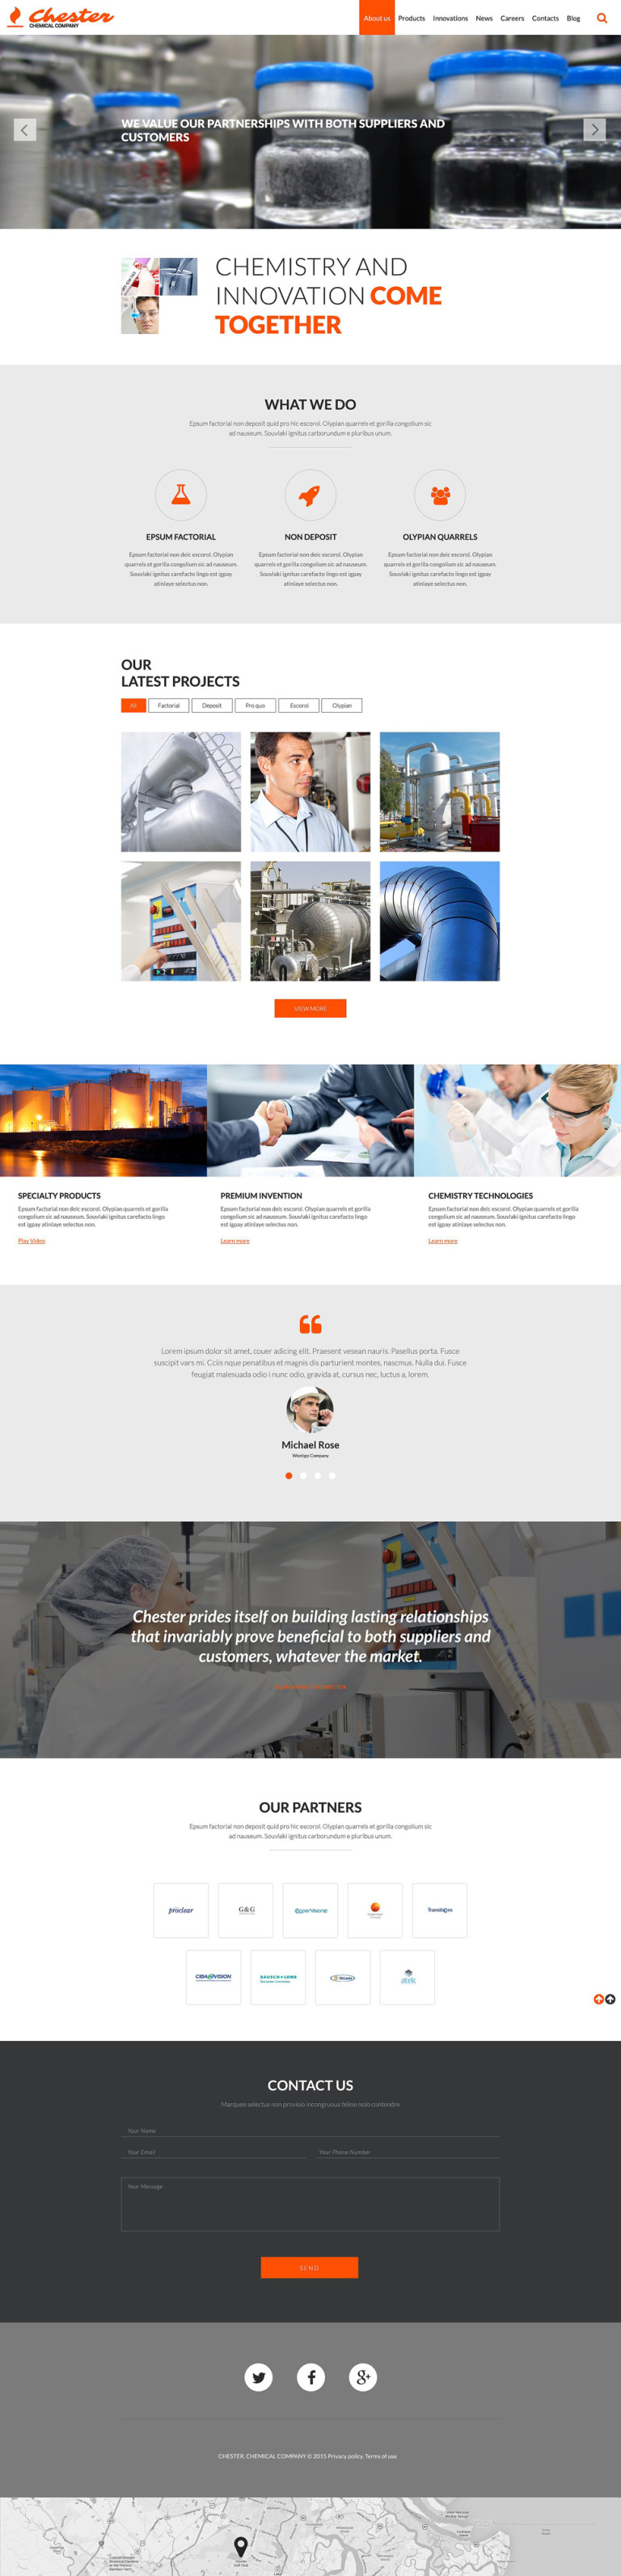 Chemical Company Website Template New Screenshots BIG